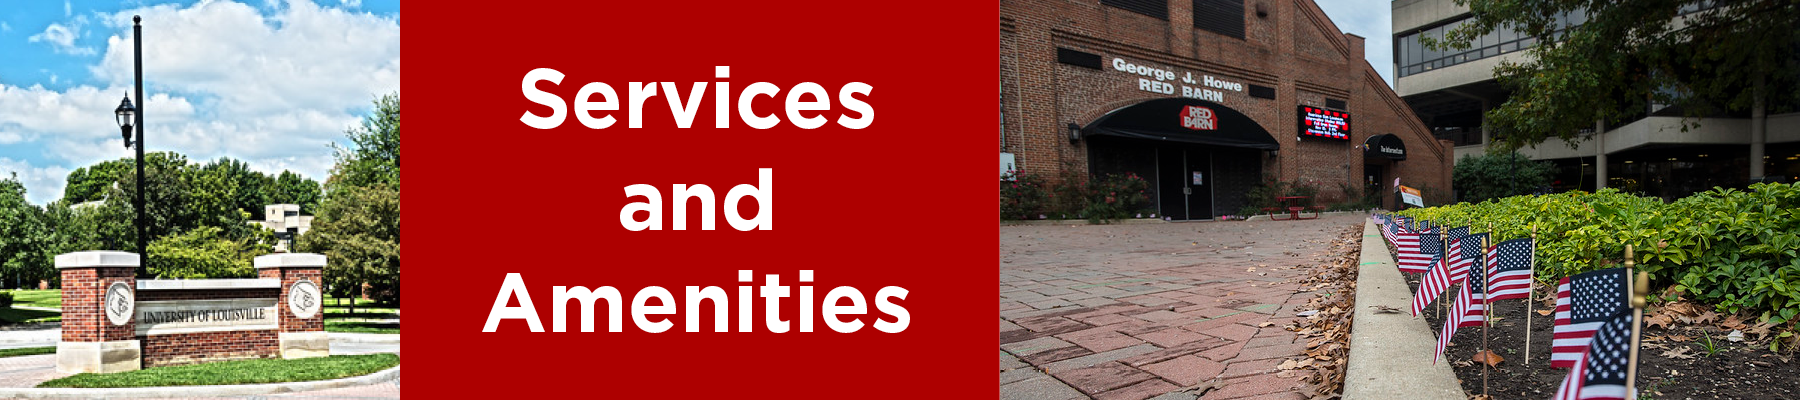 services and amenities